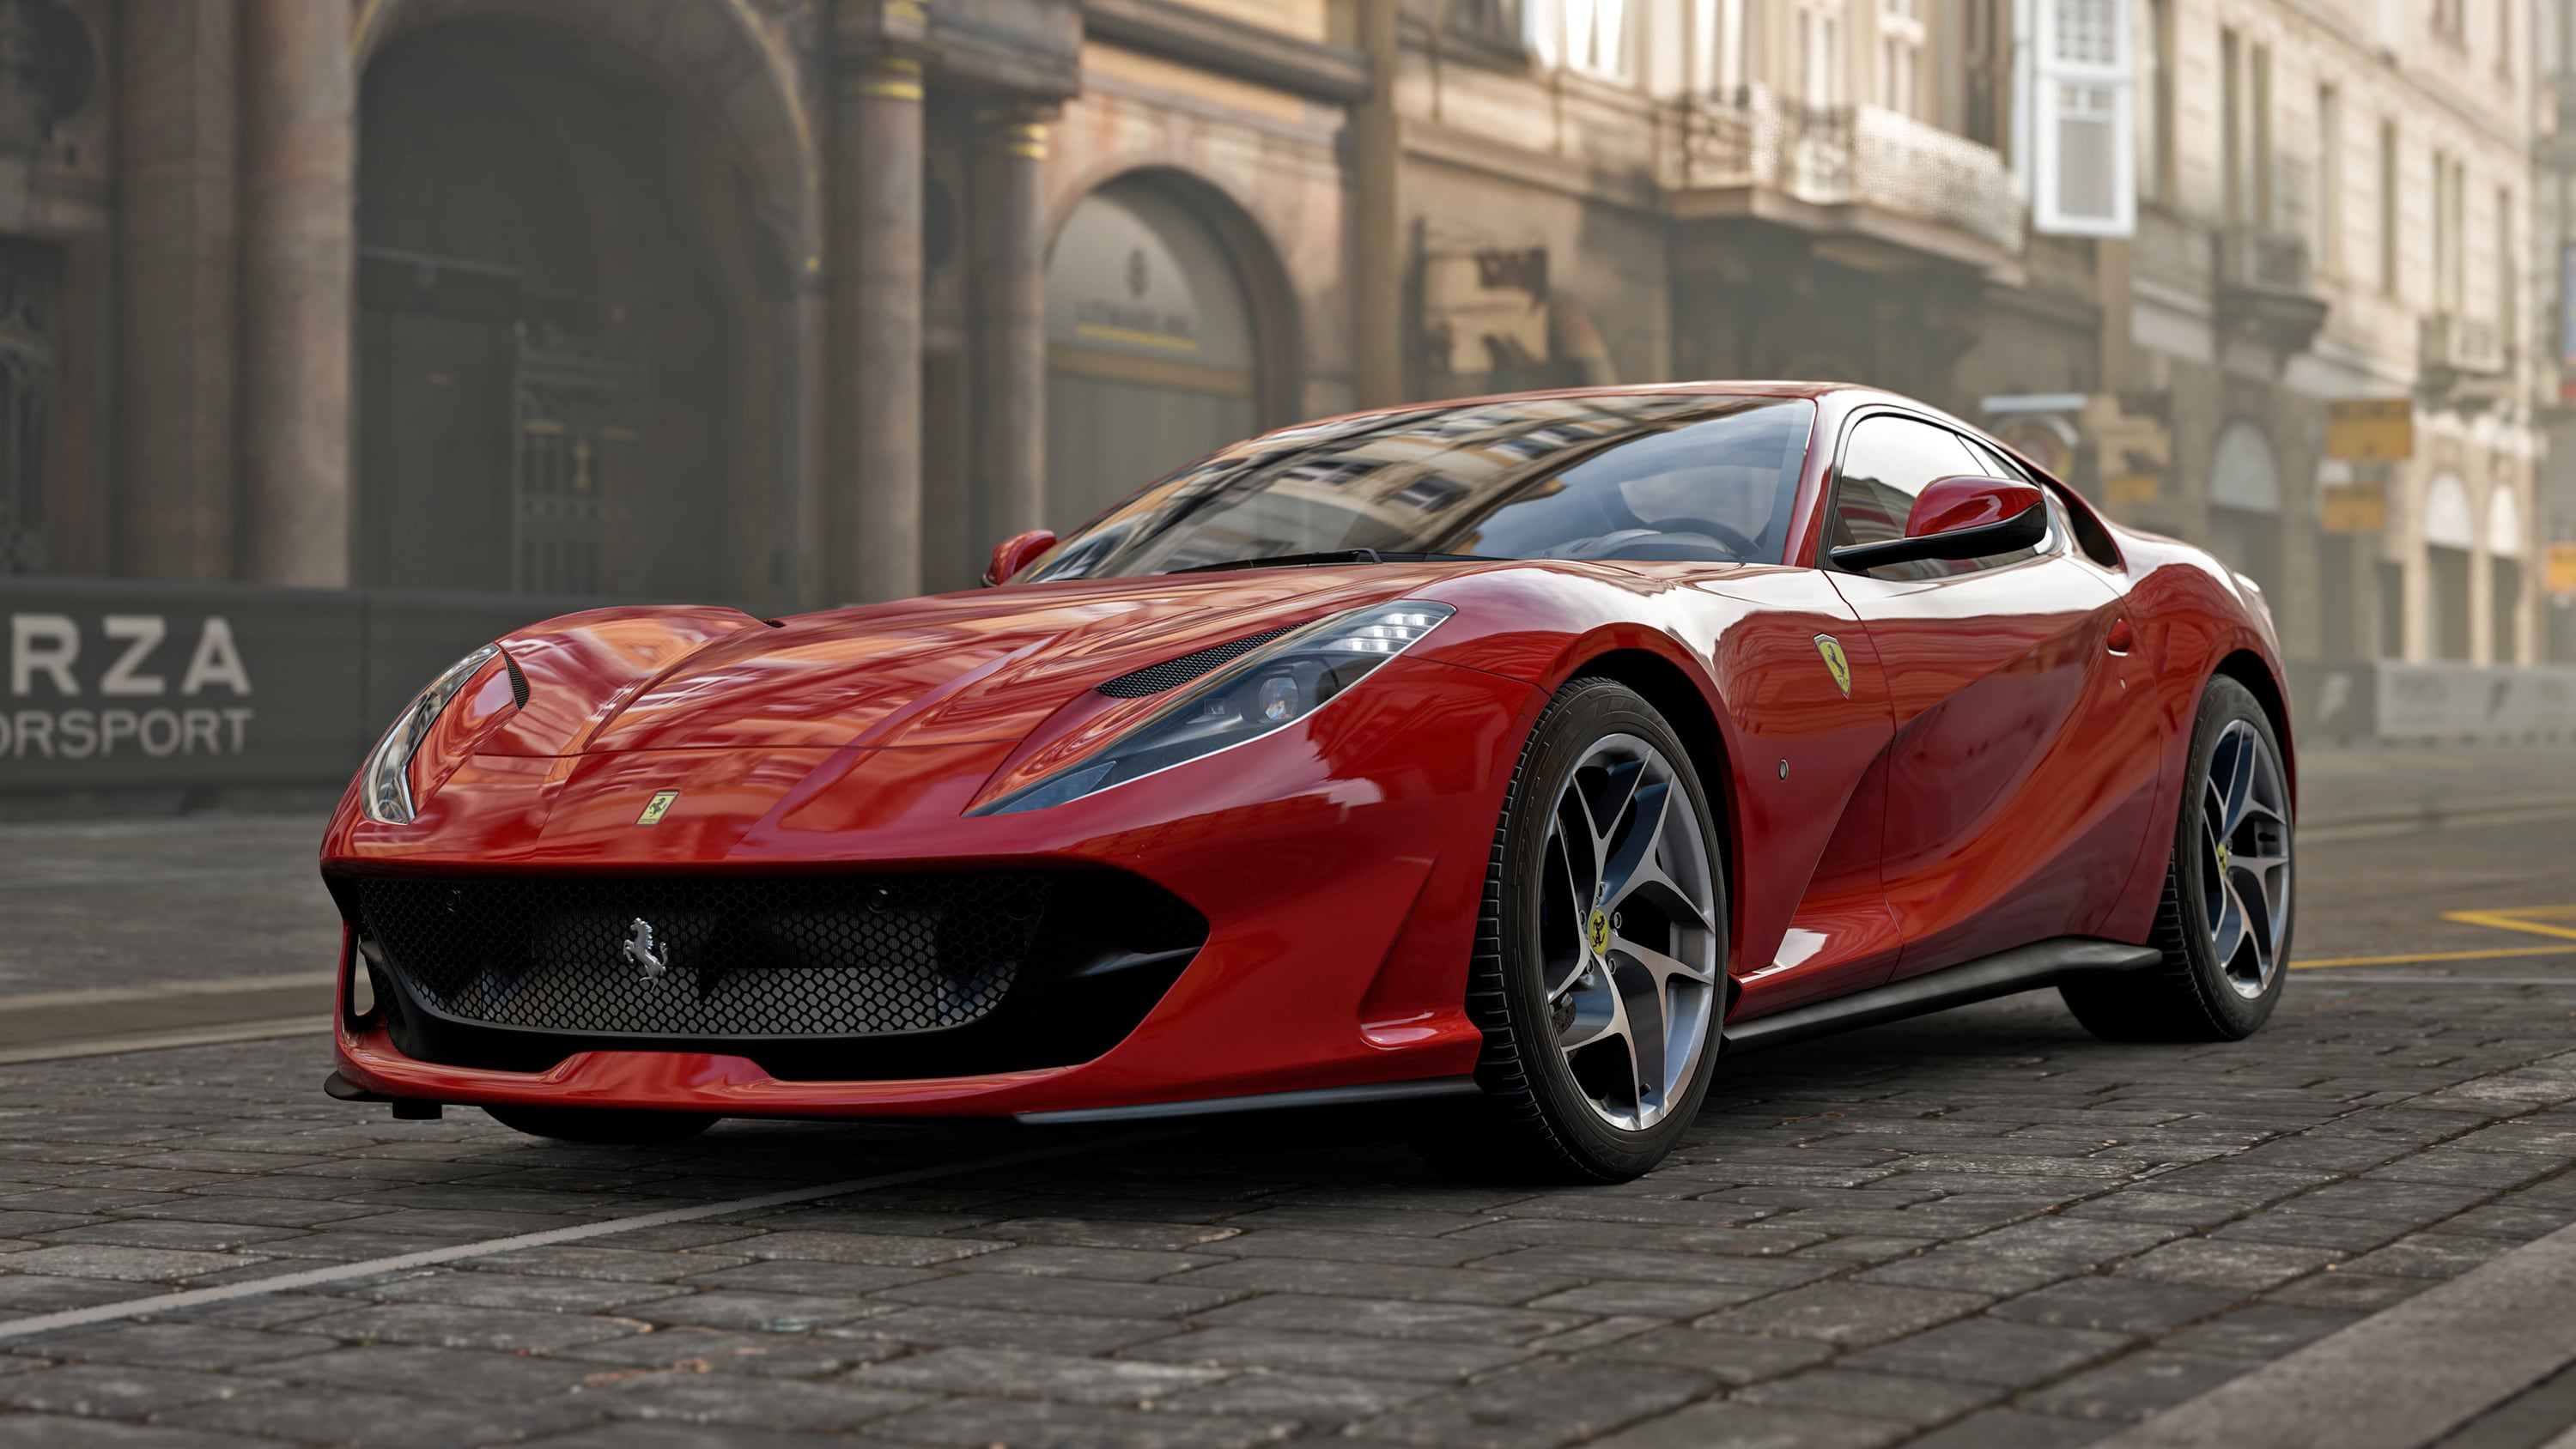 Forza Motorsport 7 Wallpapers Ultra Hd Gaming Backgrounds: Ferrari Forza Motorsport 7 4k, HD Games, 4k Wallpapers